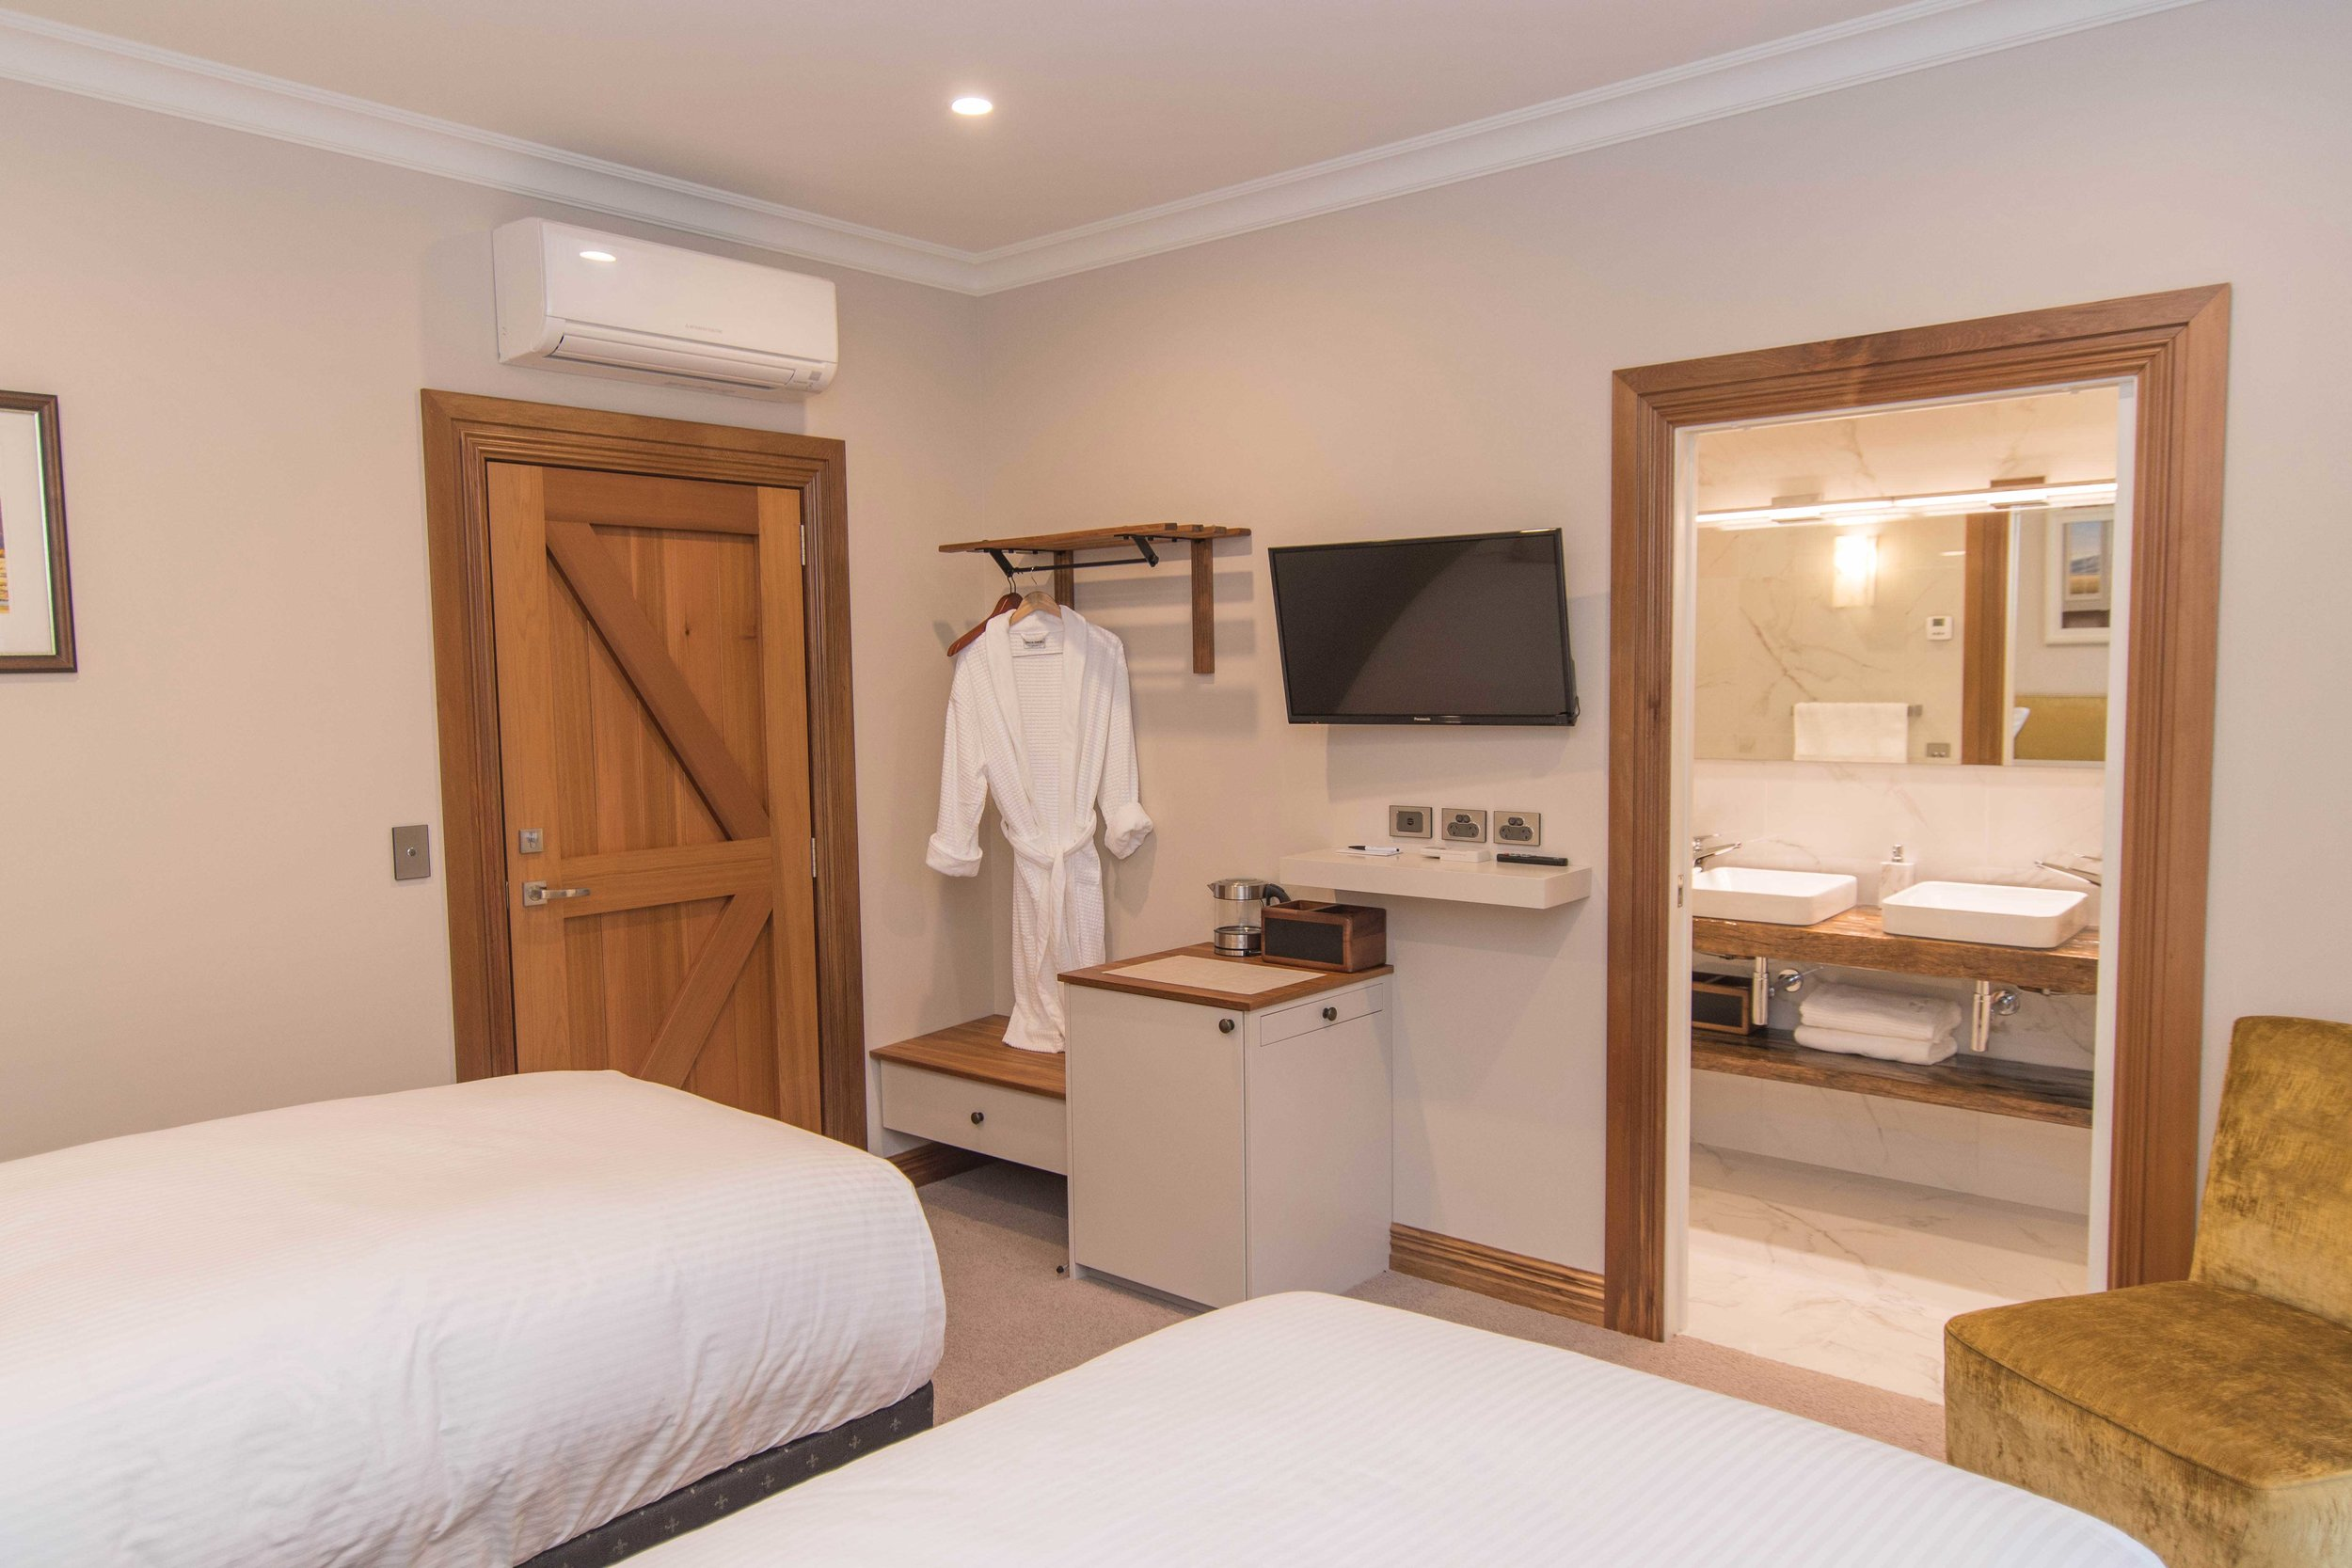 Relax in our luxury accommodation, where every little detail has been thought of.